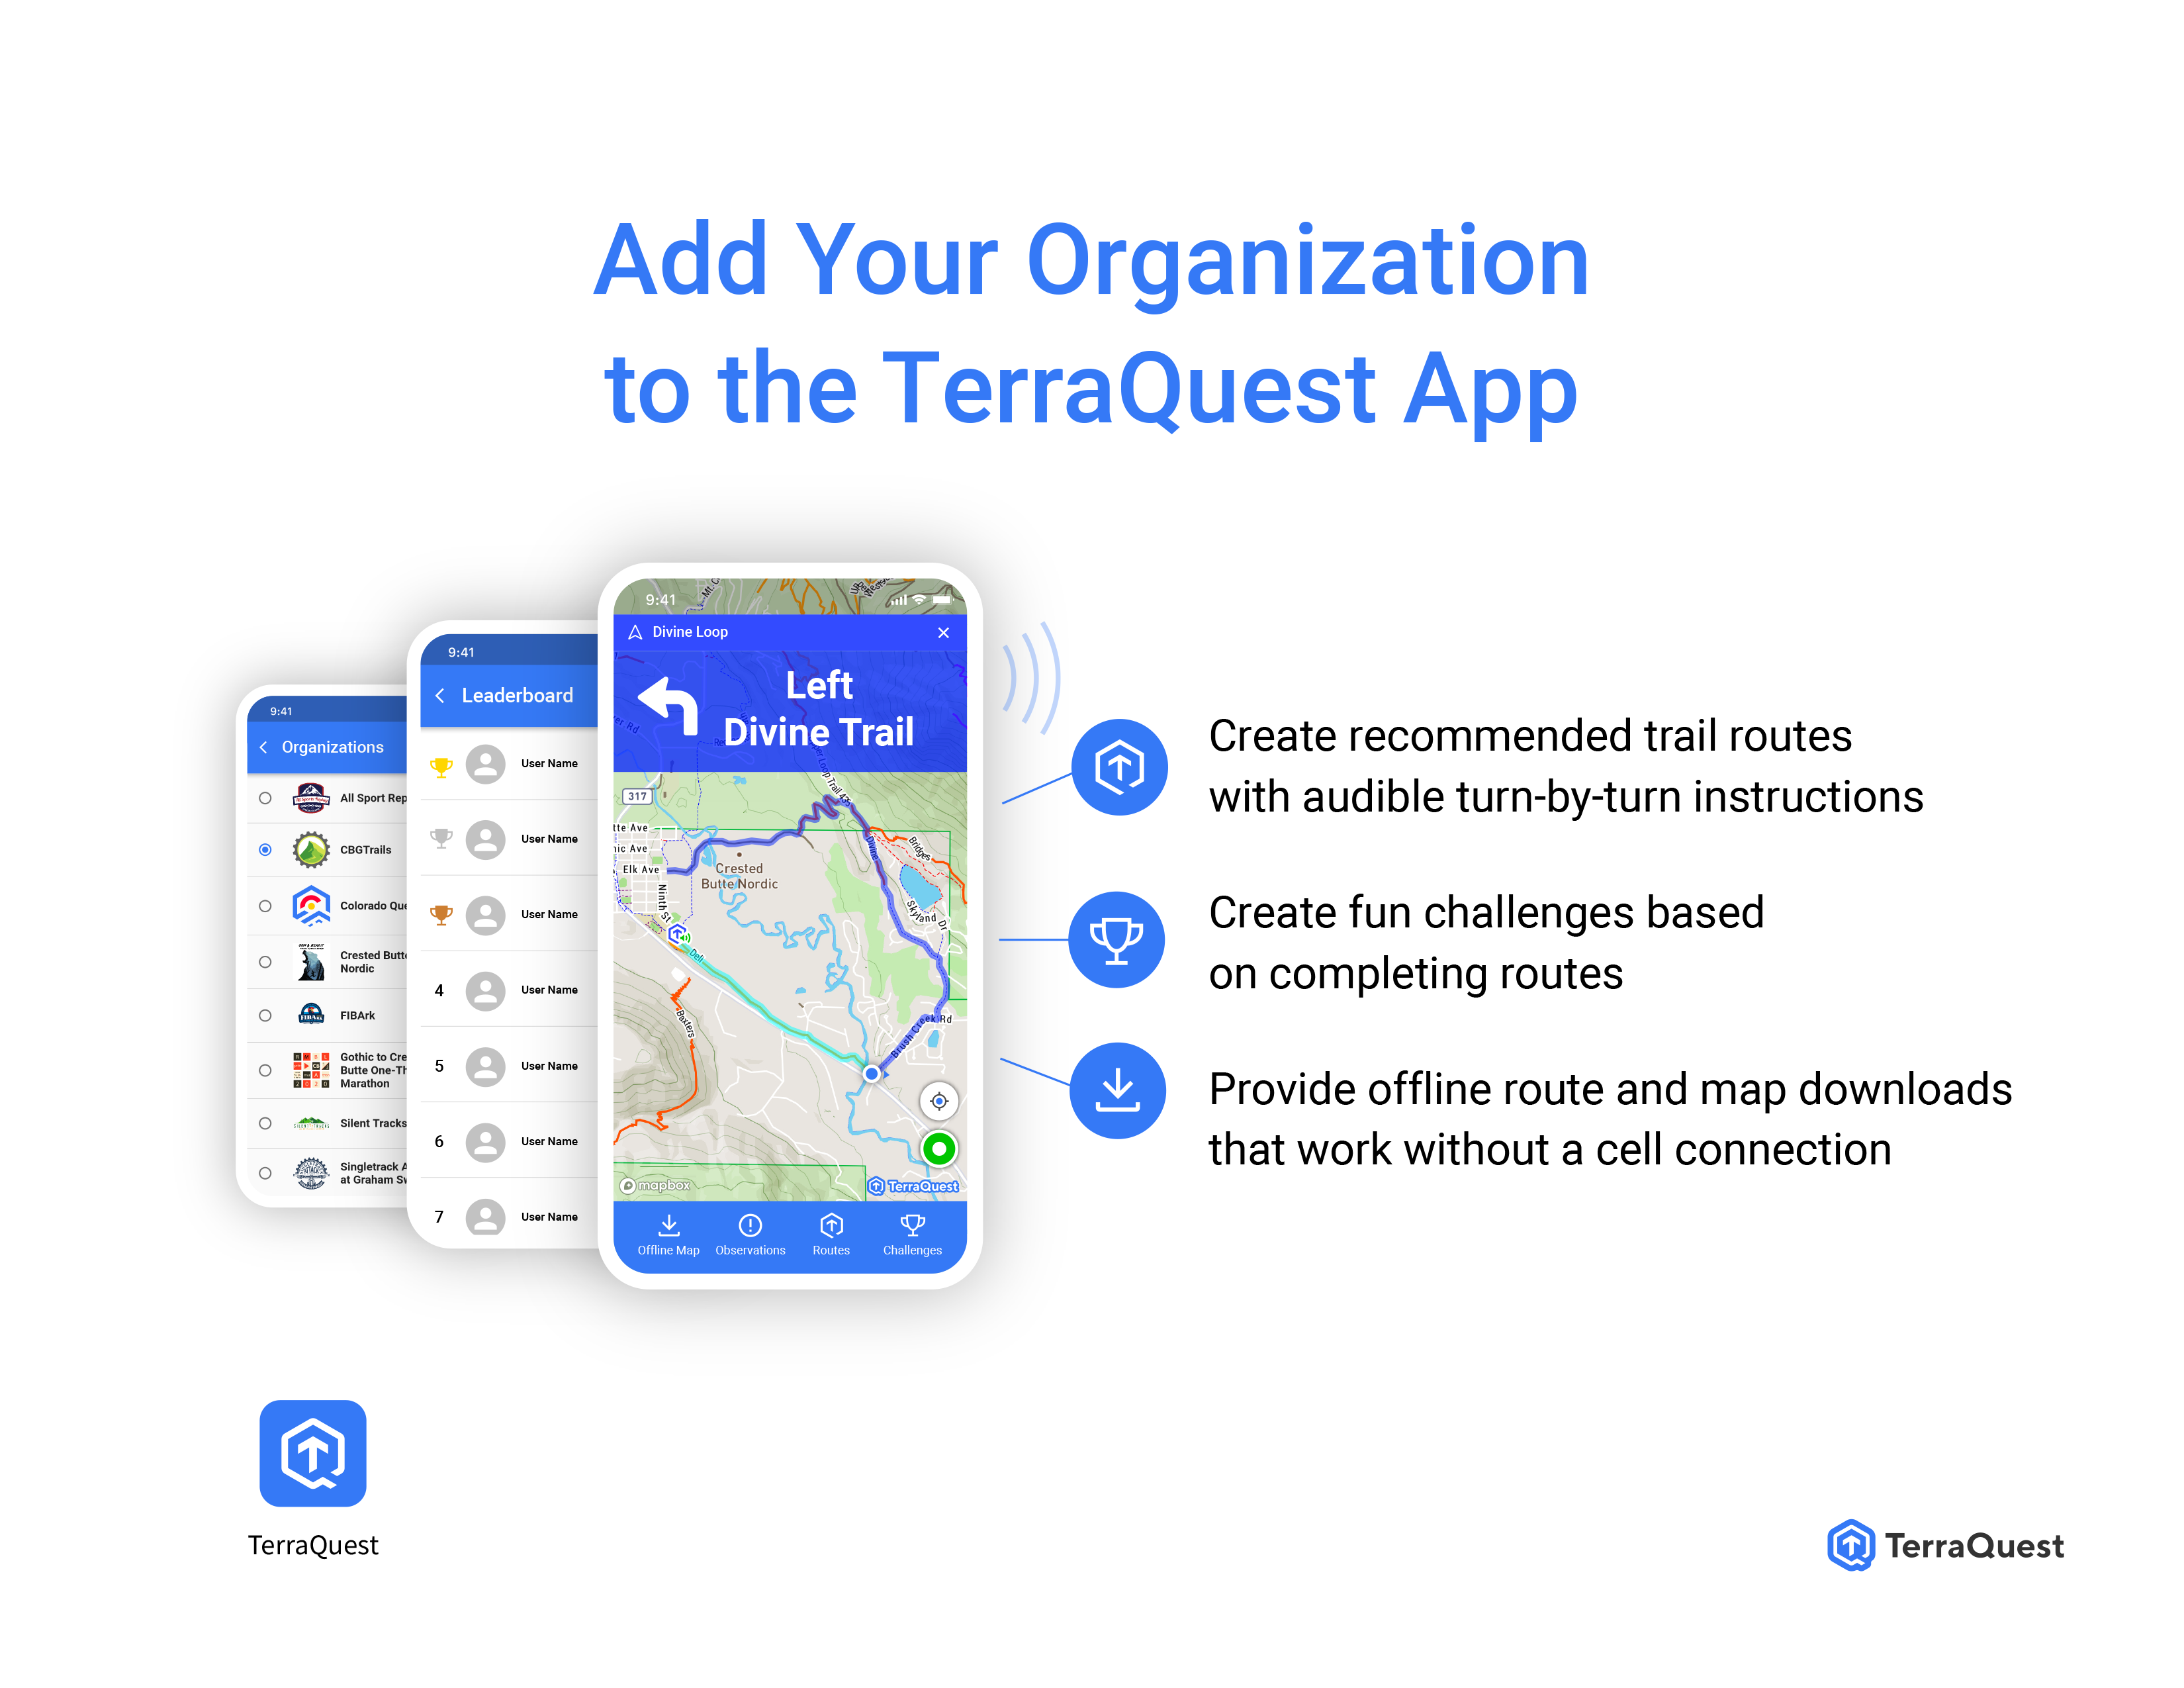 Add your organization to TerraQuest